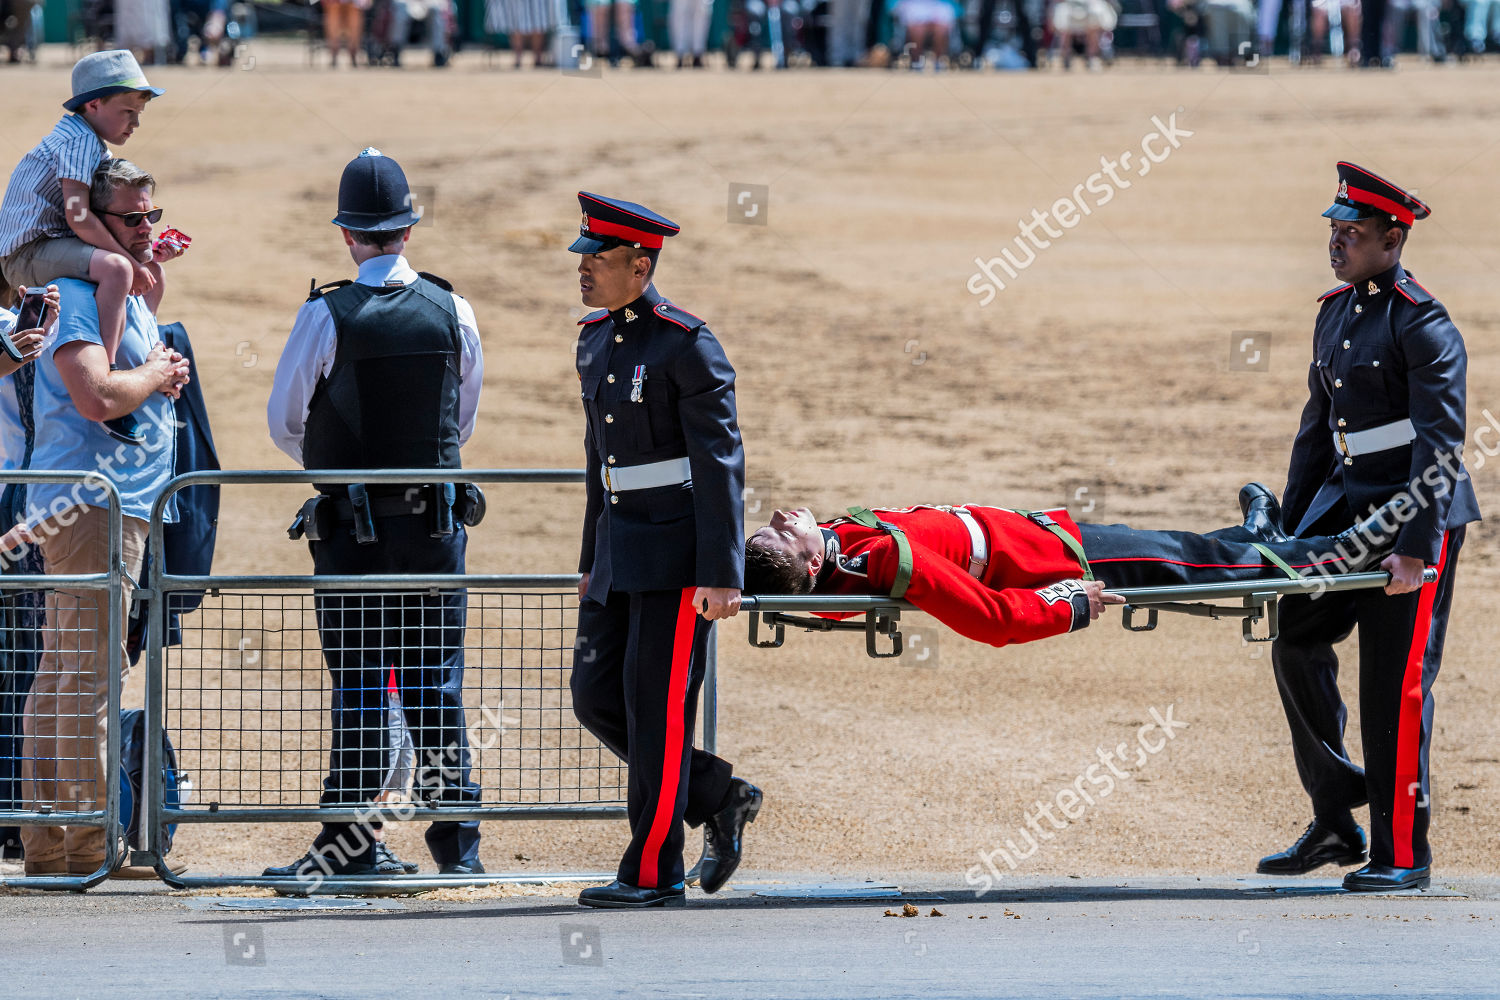 Two guardsmen faint stretchered off Editorial Stock Photo